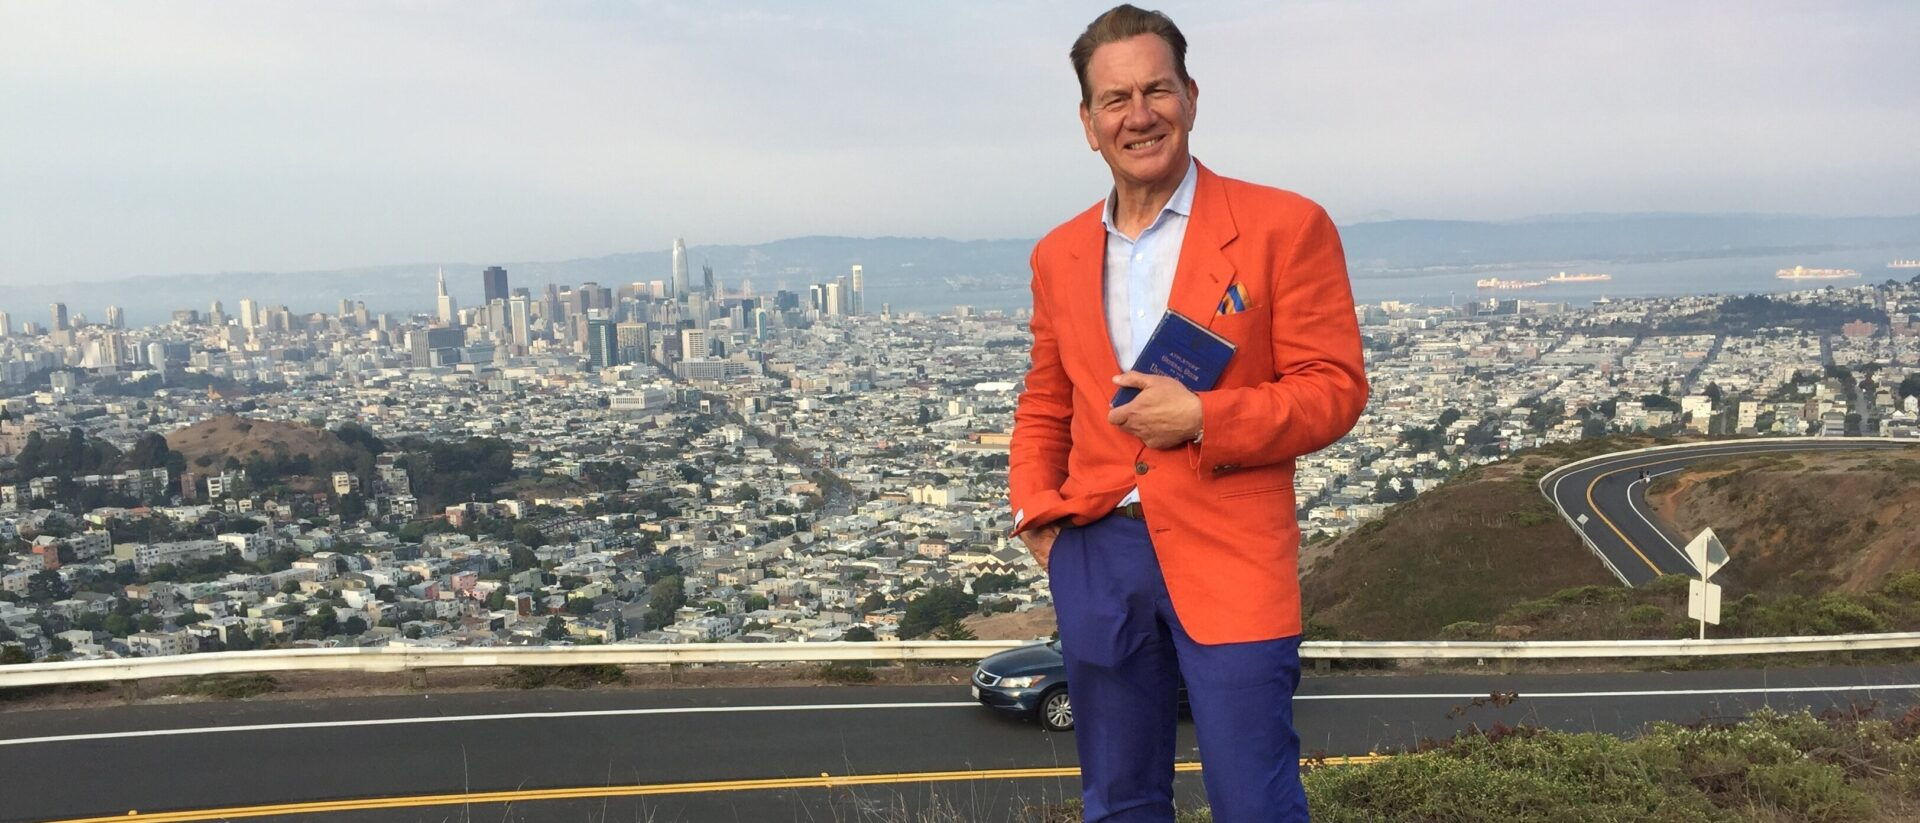 Michael Portillo standing on a hill overlooking a city with a book smiling at the camera.